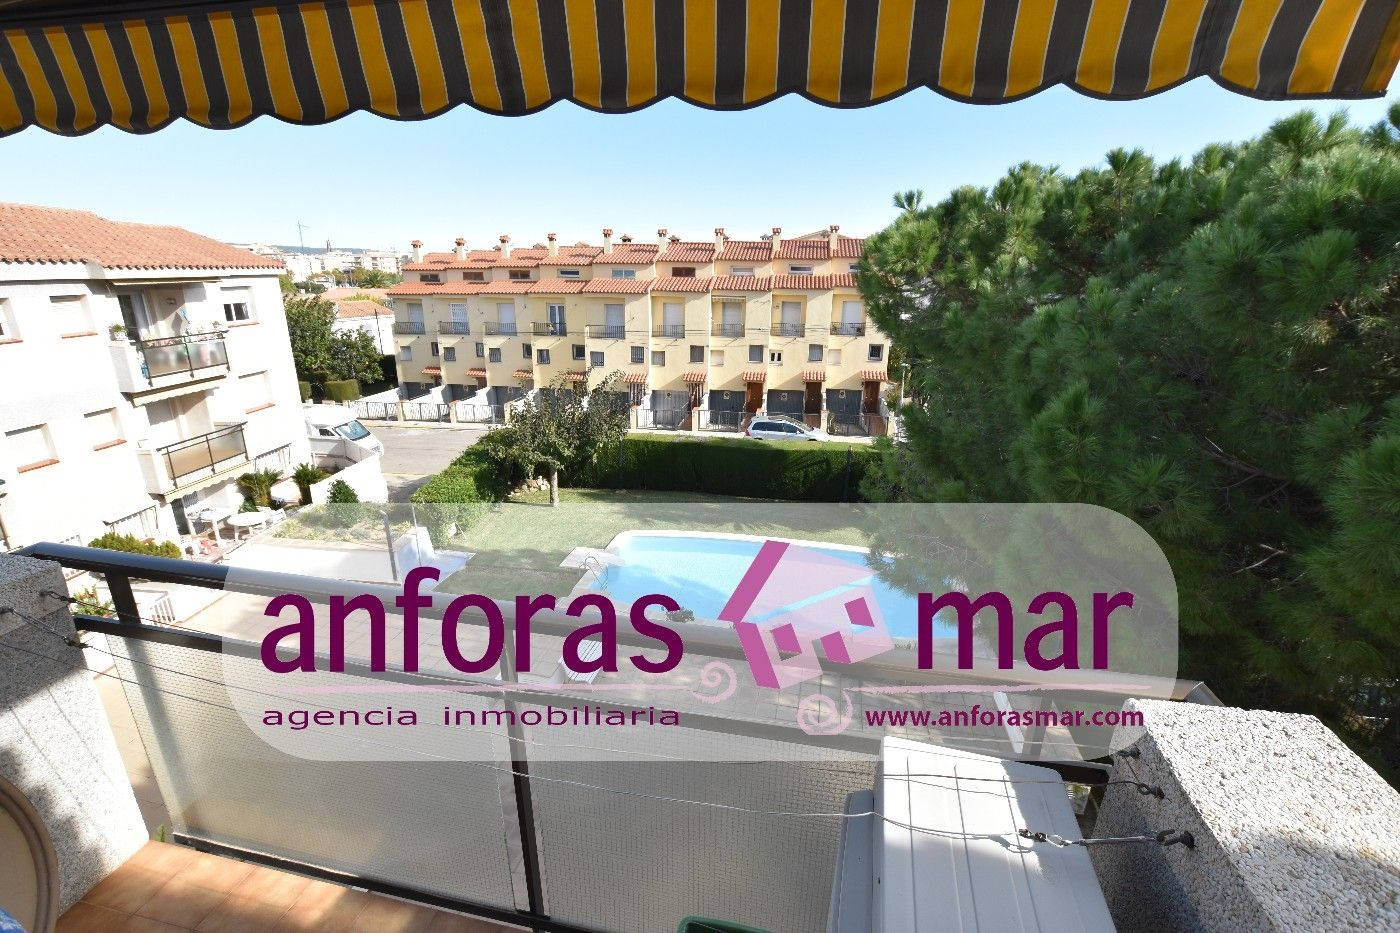 Appartement in Carrer Pandols (dels), 3